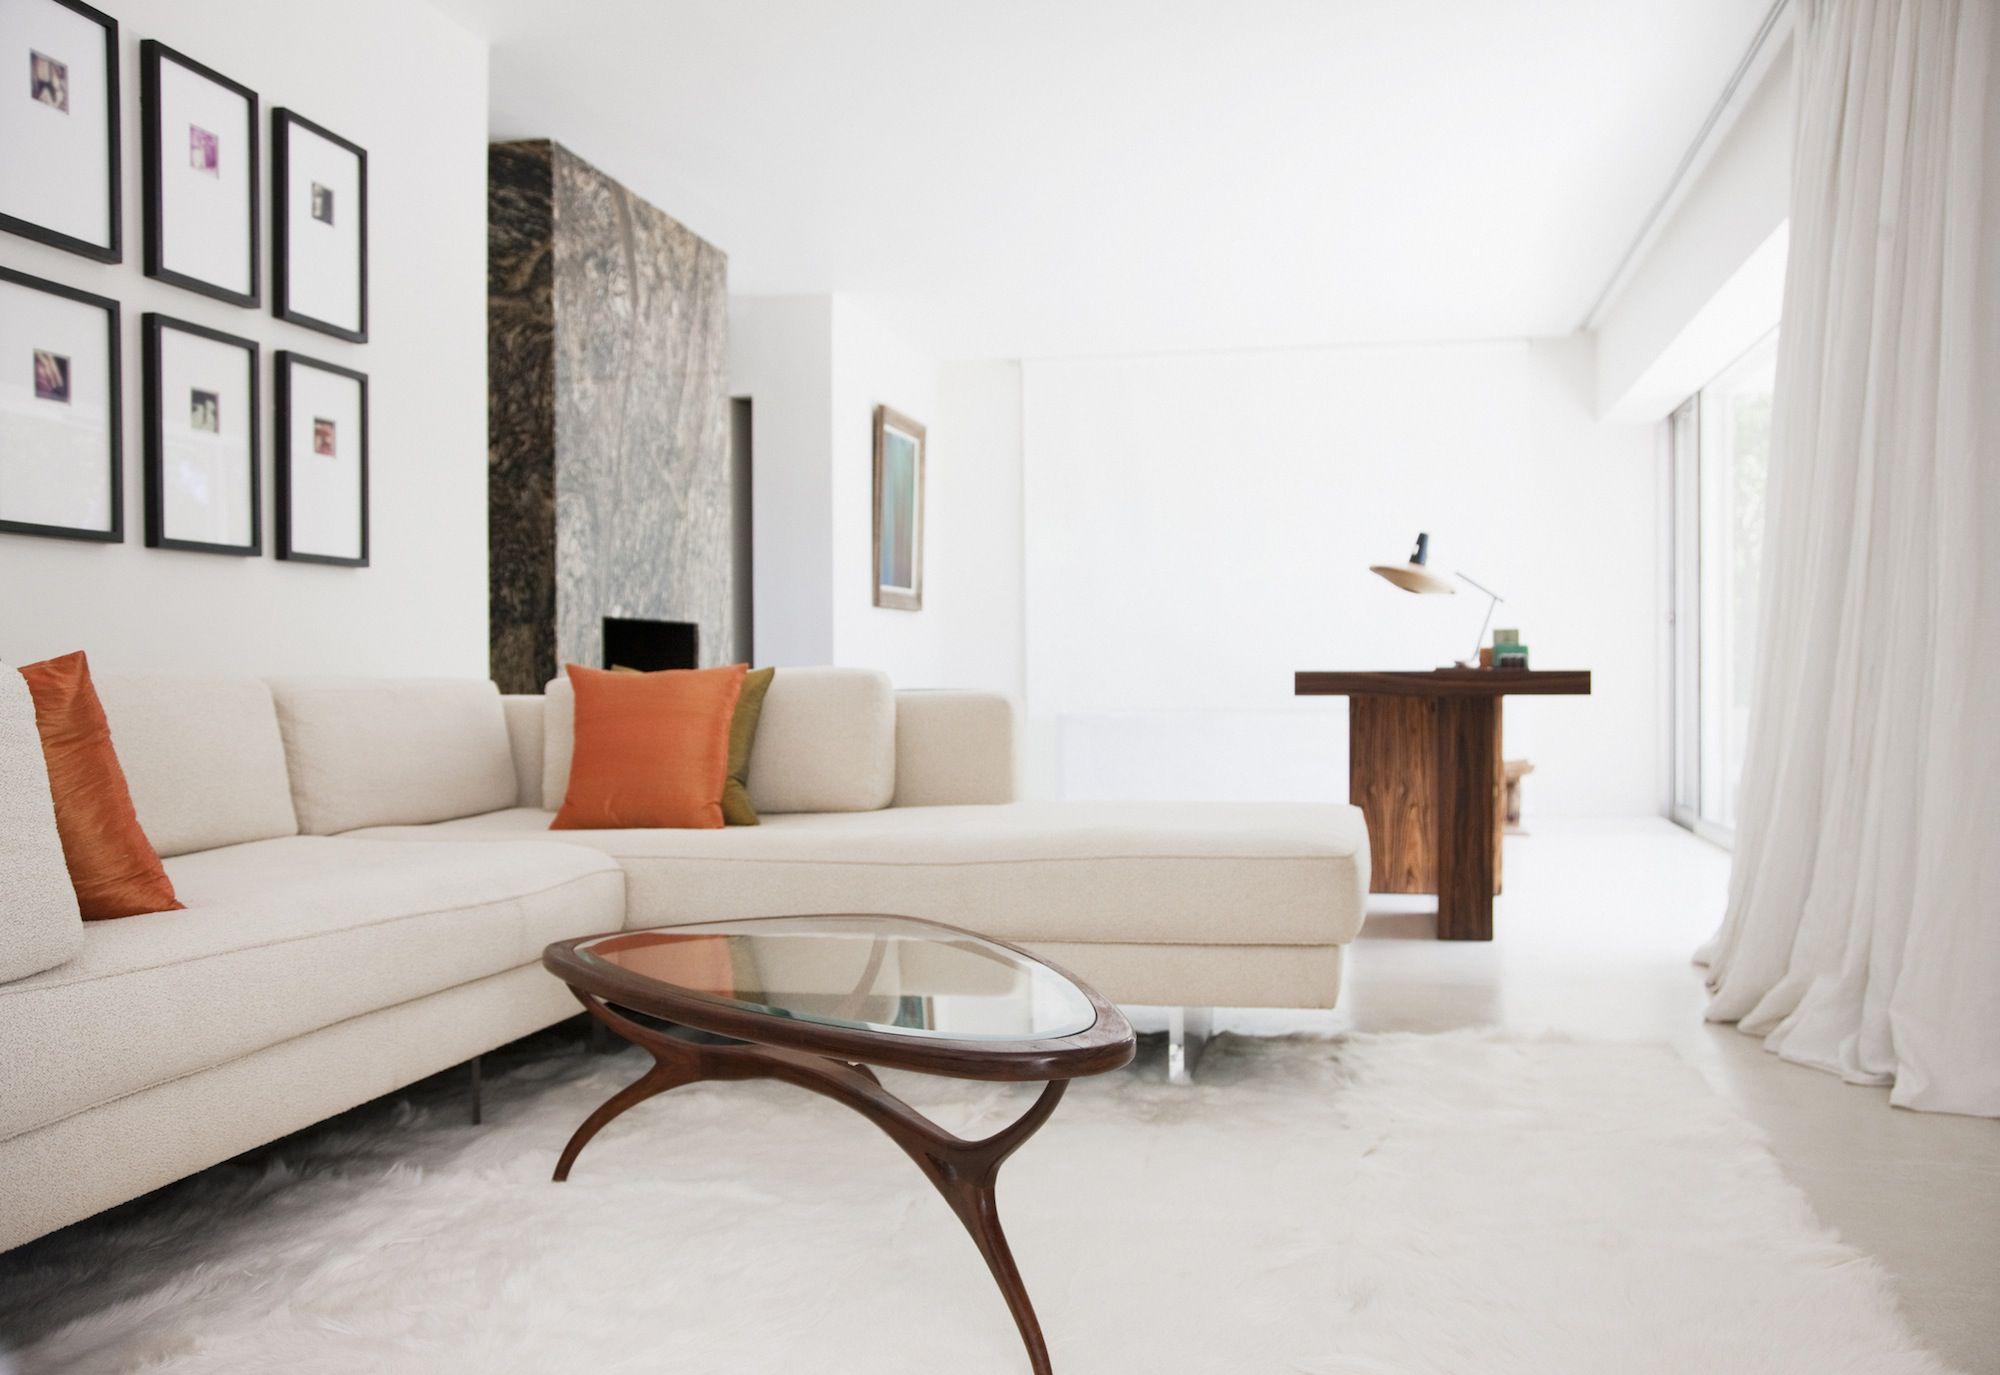 5 Ways to Use Accent Furniture in Your Home